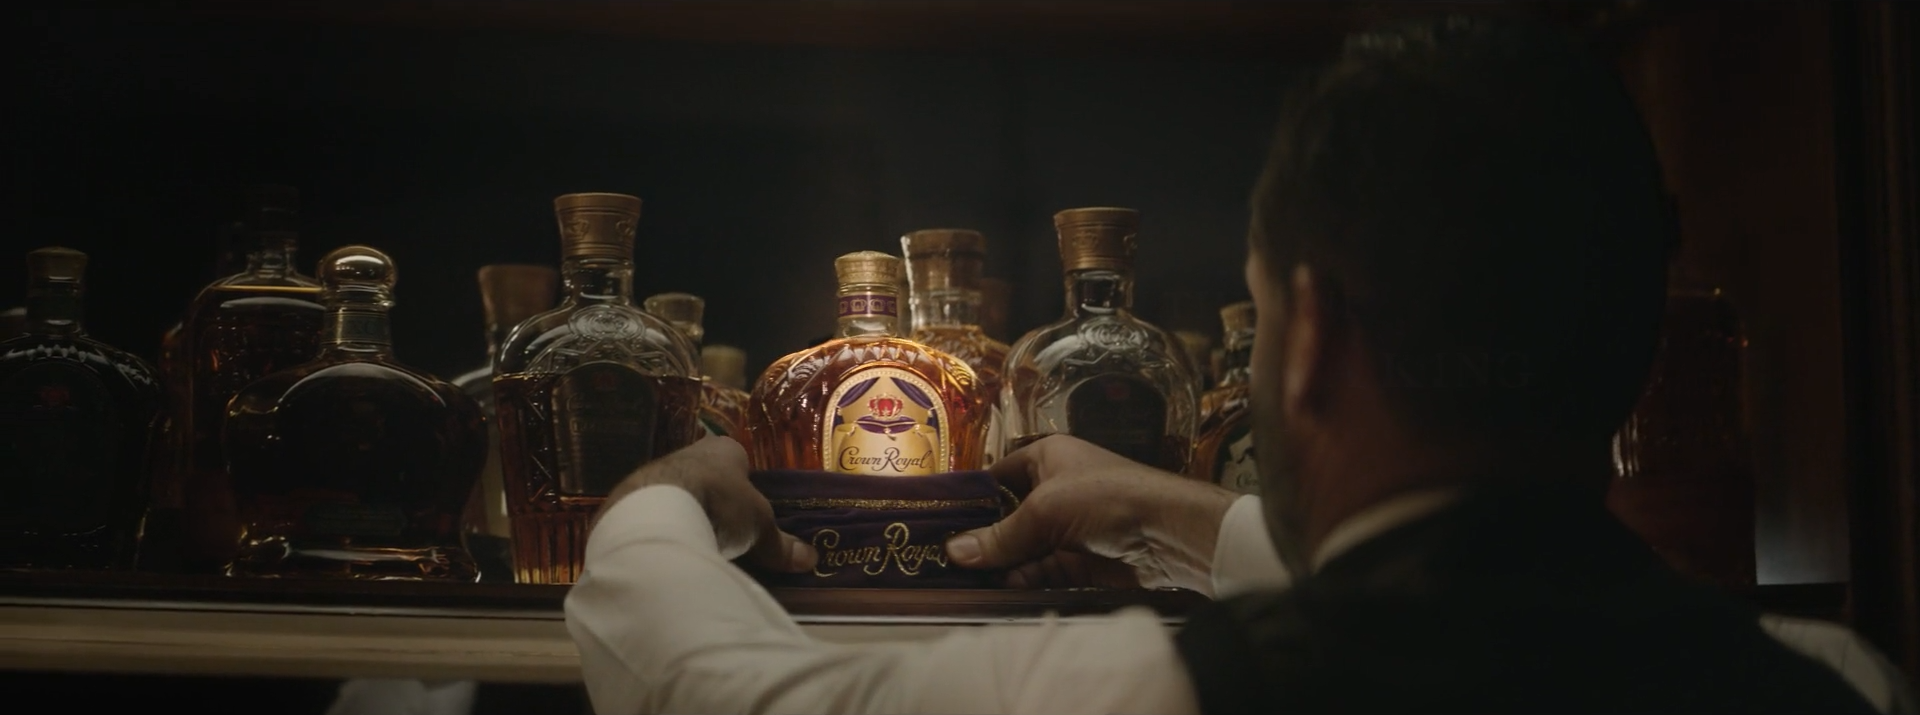 CrownRoyal-The-One-Made-For-A-King.00_01_24_22.Still030